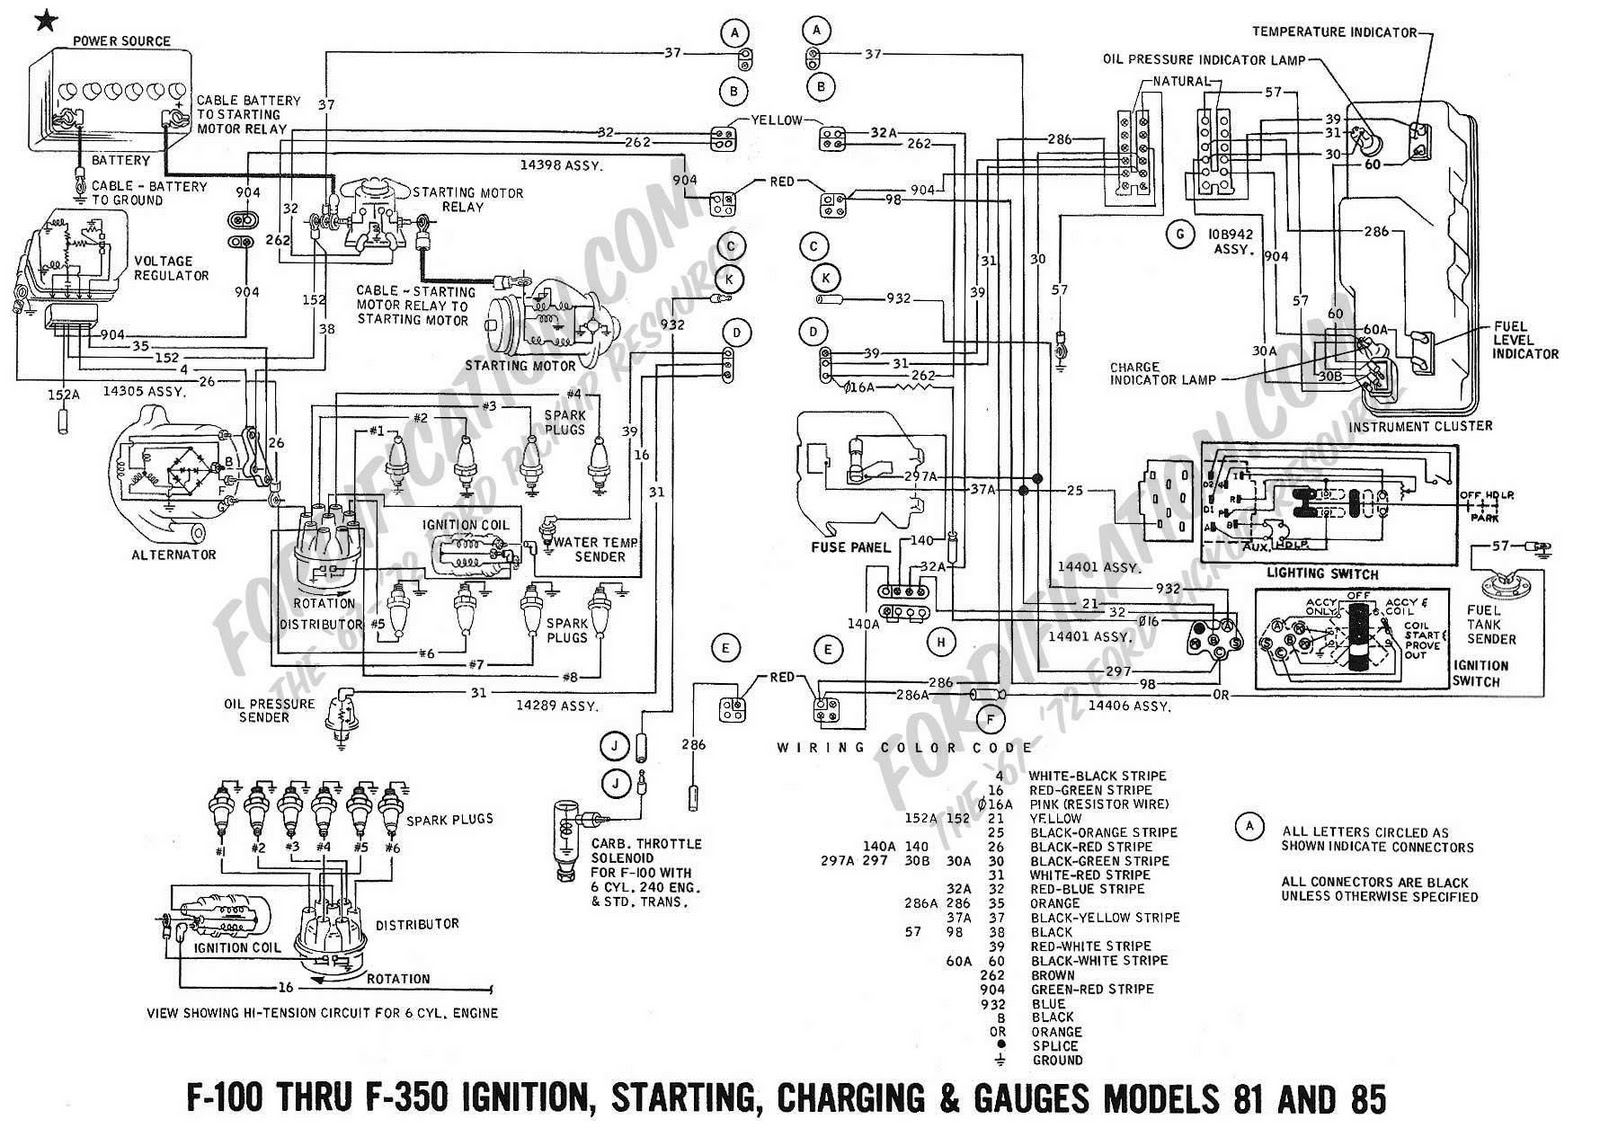 89 Civic Egr Location in addition Water Pump Location 2008 Hhr additionally 1993 Ford F 250 Fuse Box Diagram together with 1969 Ford F100 F350 Ignition Starting moreover Ford F150 Ac Parts Diagram Html. on 1995 ford e 150 fuel relay